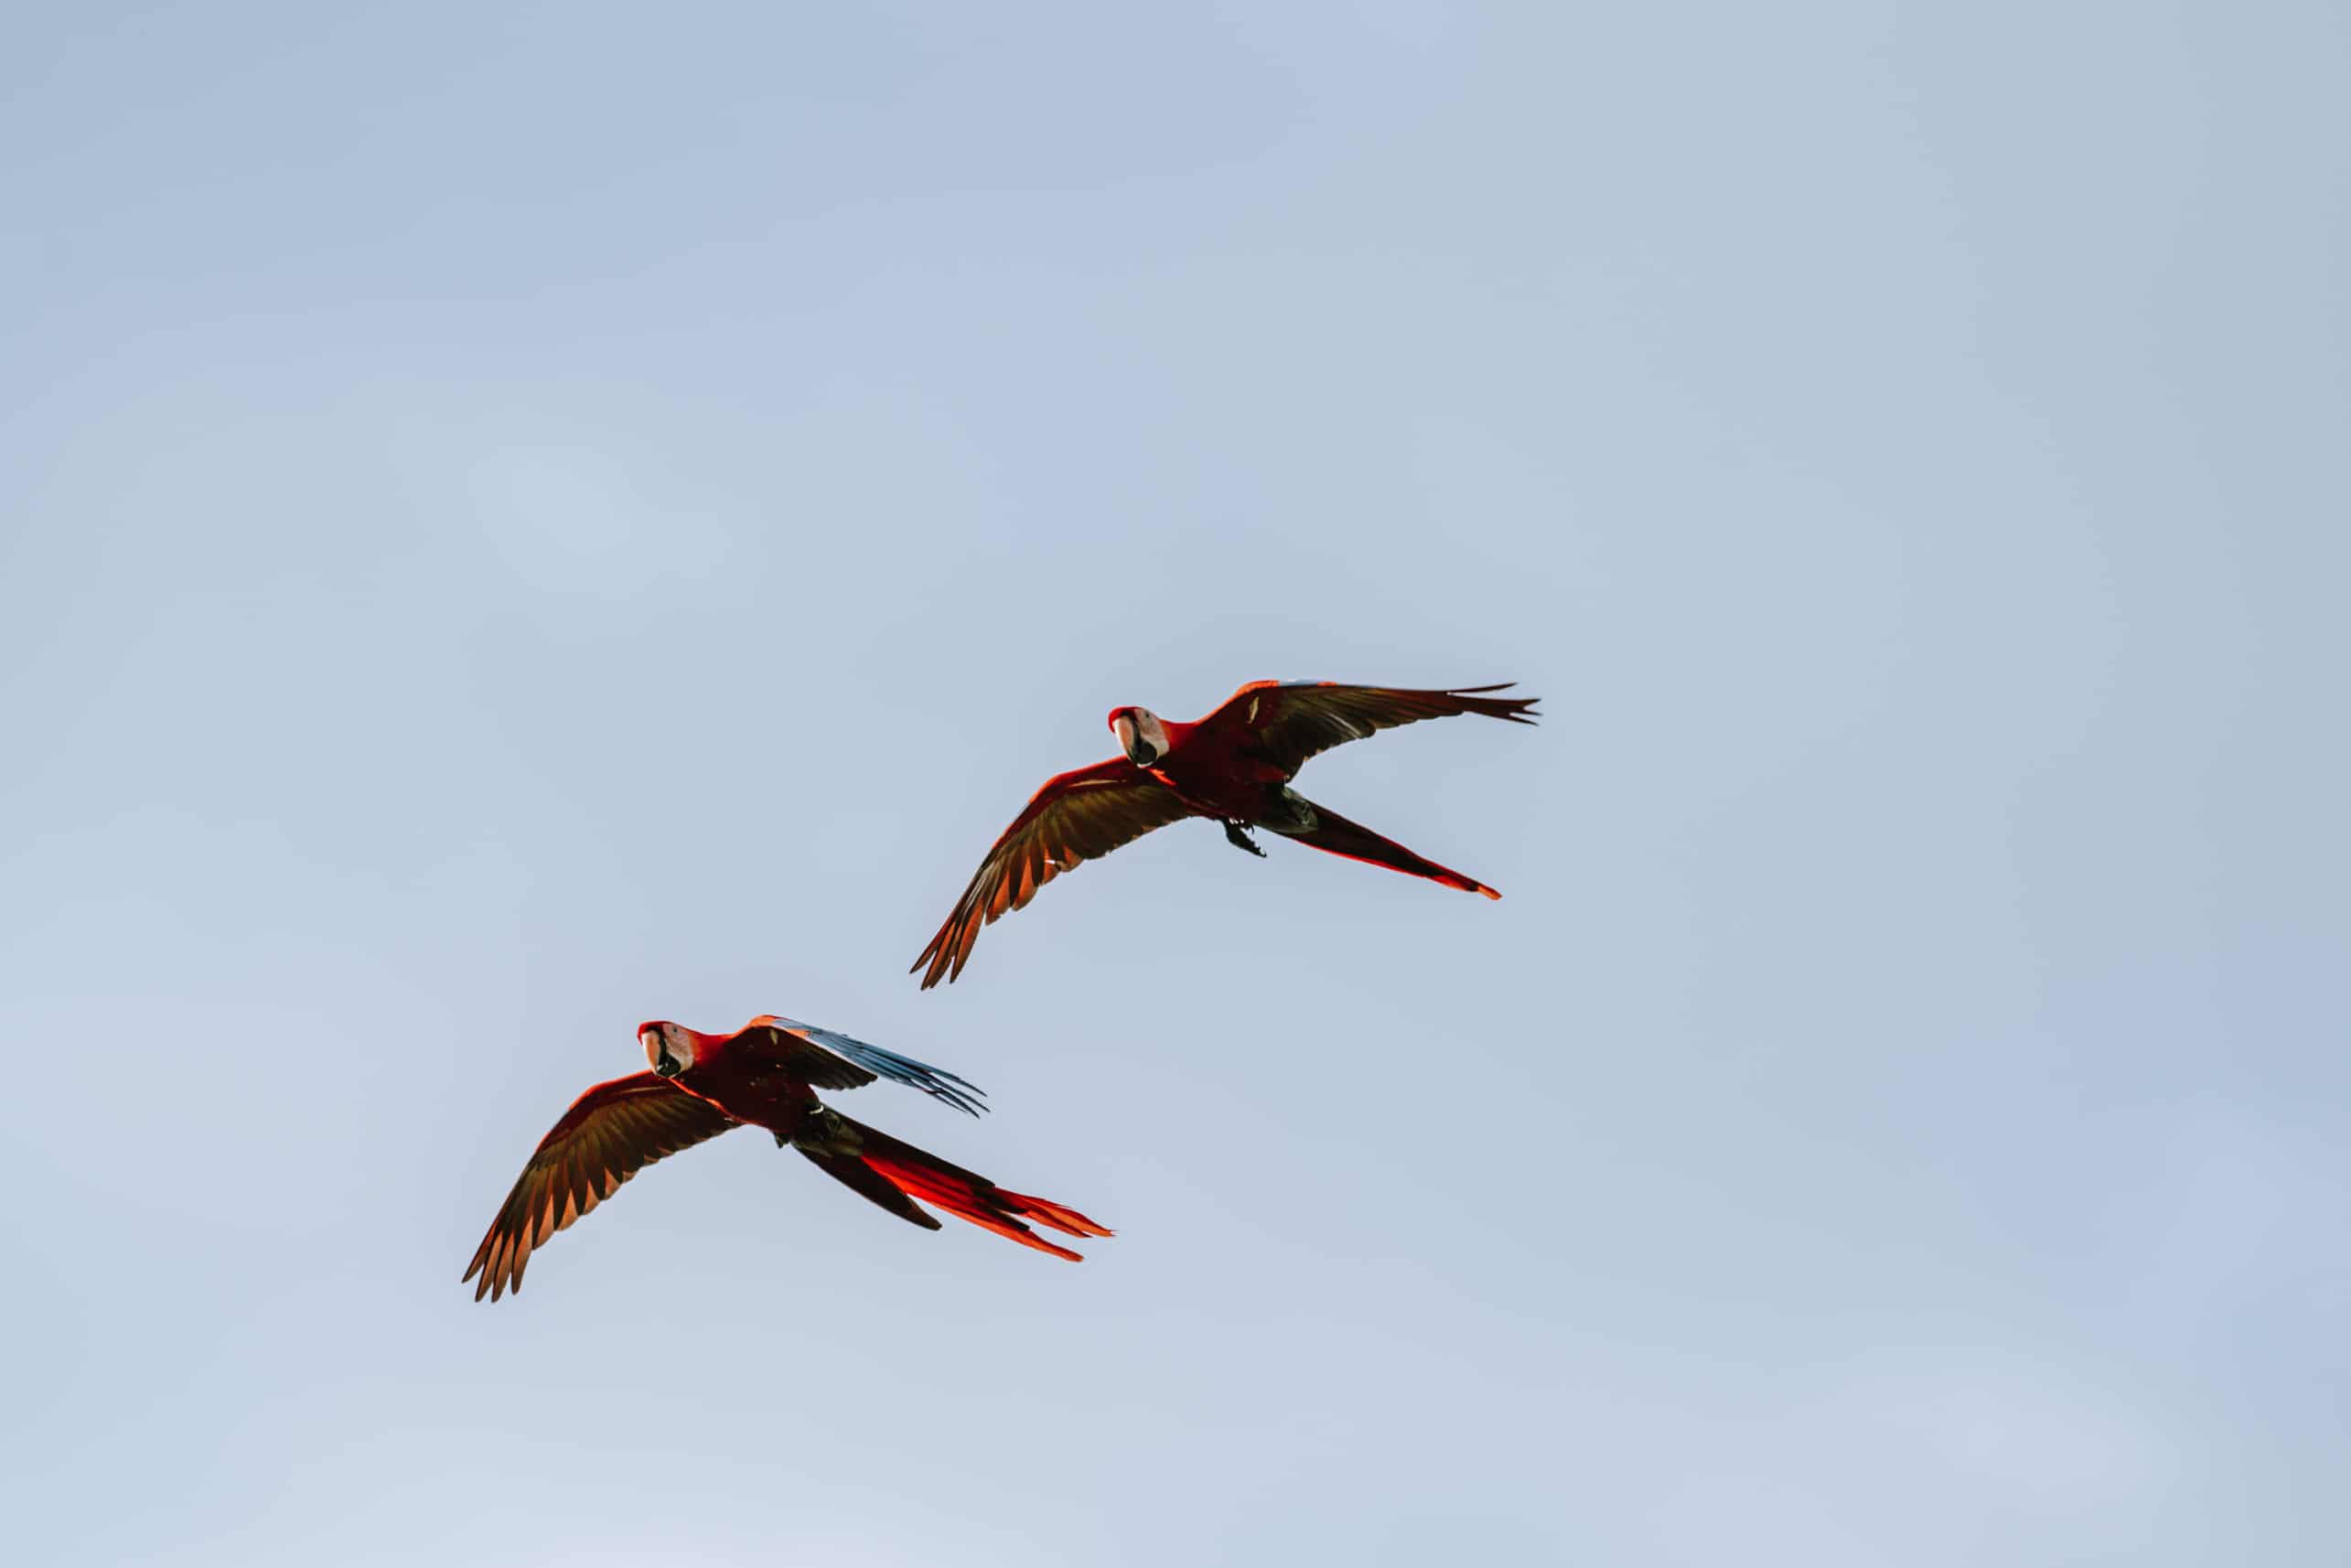 Two parrots flying next to each other